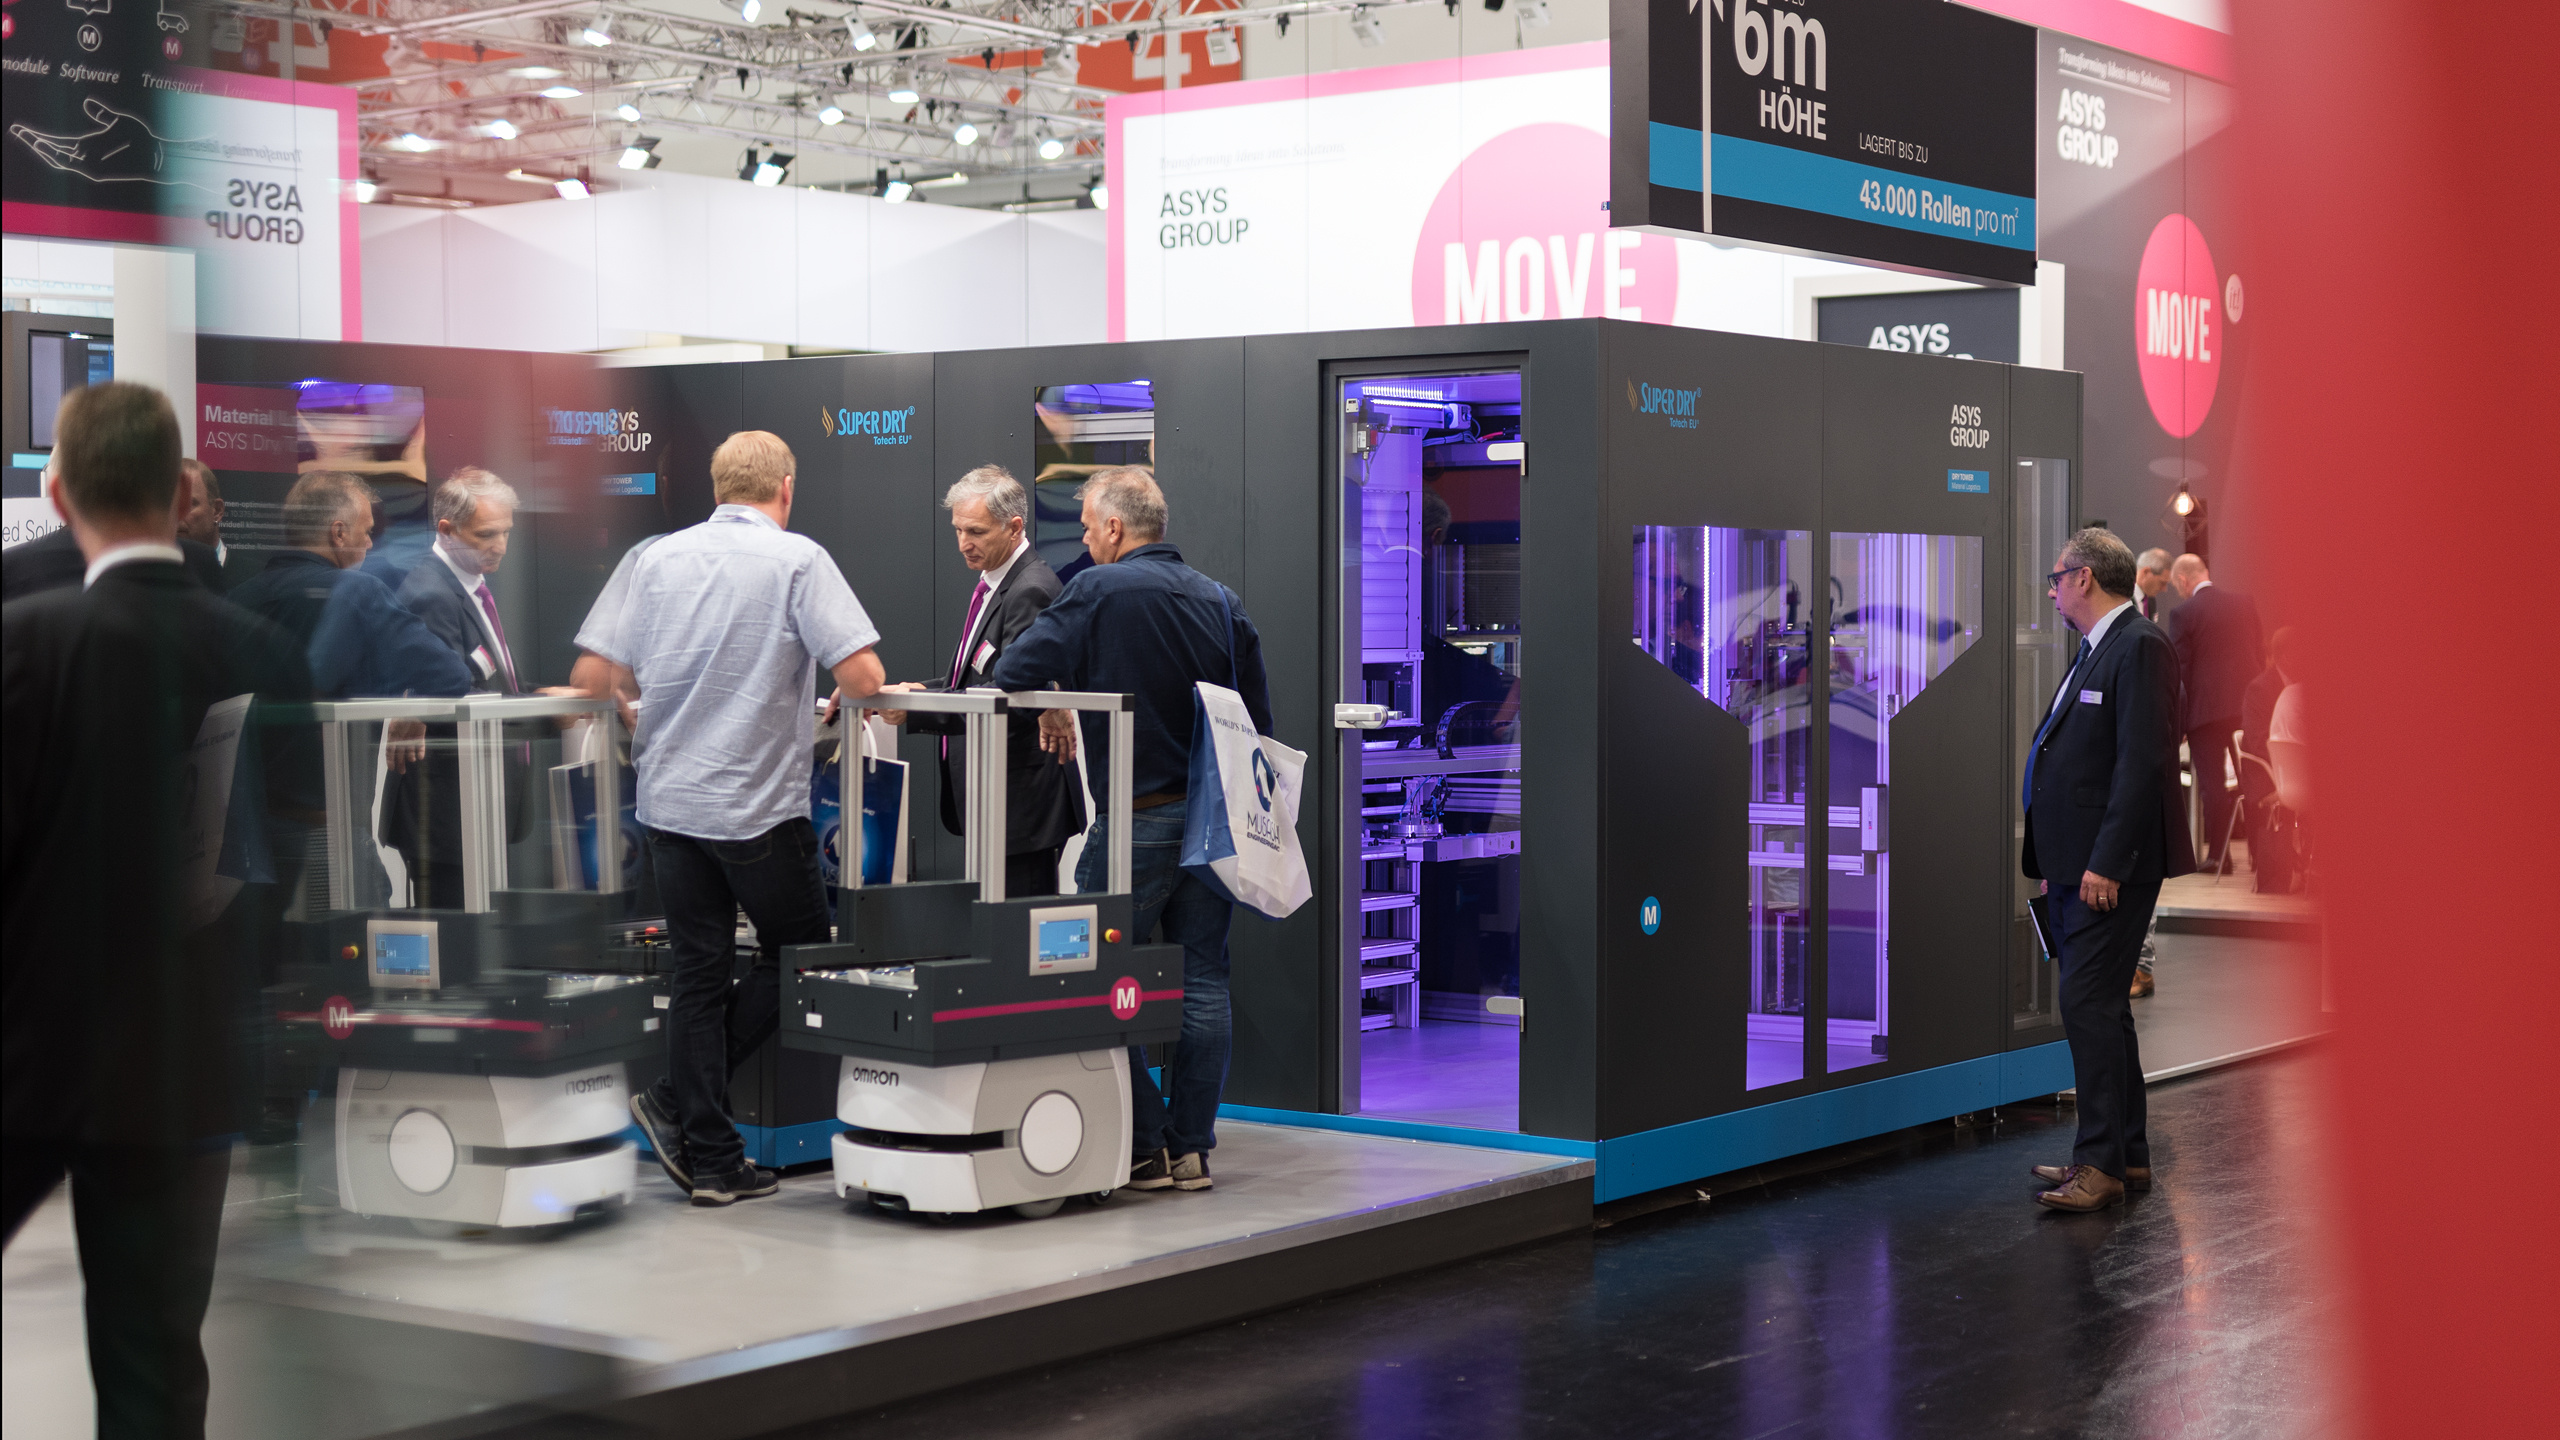 Conversation at the booth of ASYS Automatisierungssysteme GmbH